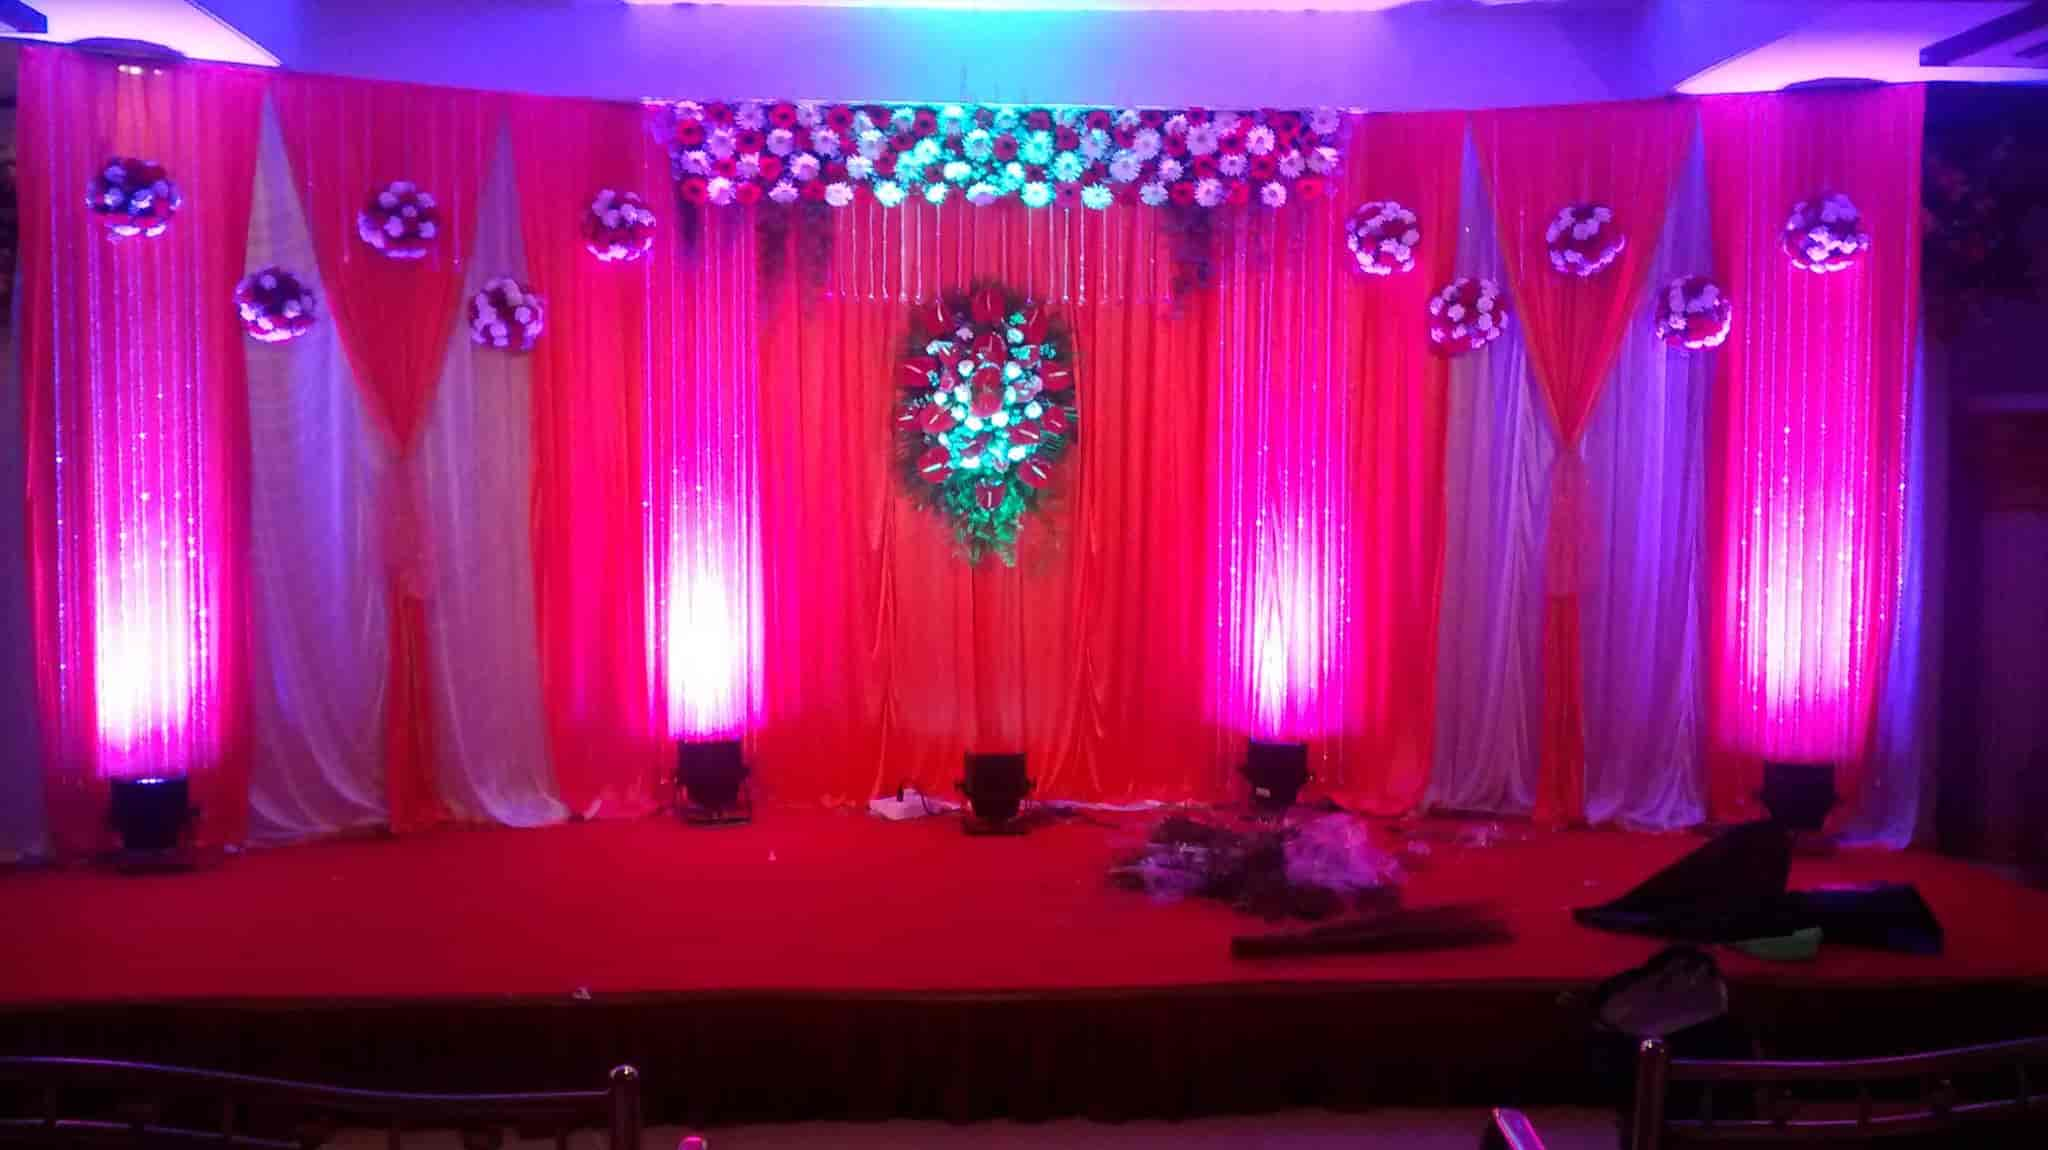 Tulip Apna Bazar Banquet Hall, Dadar East - Apna Bazar Banquet Hall on